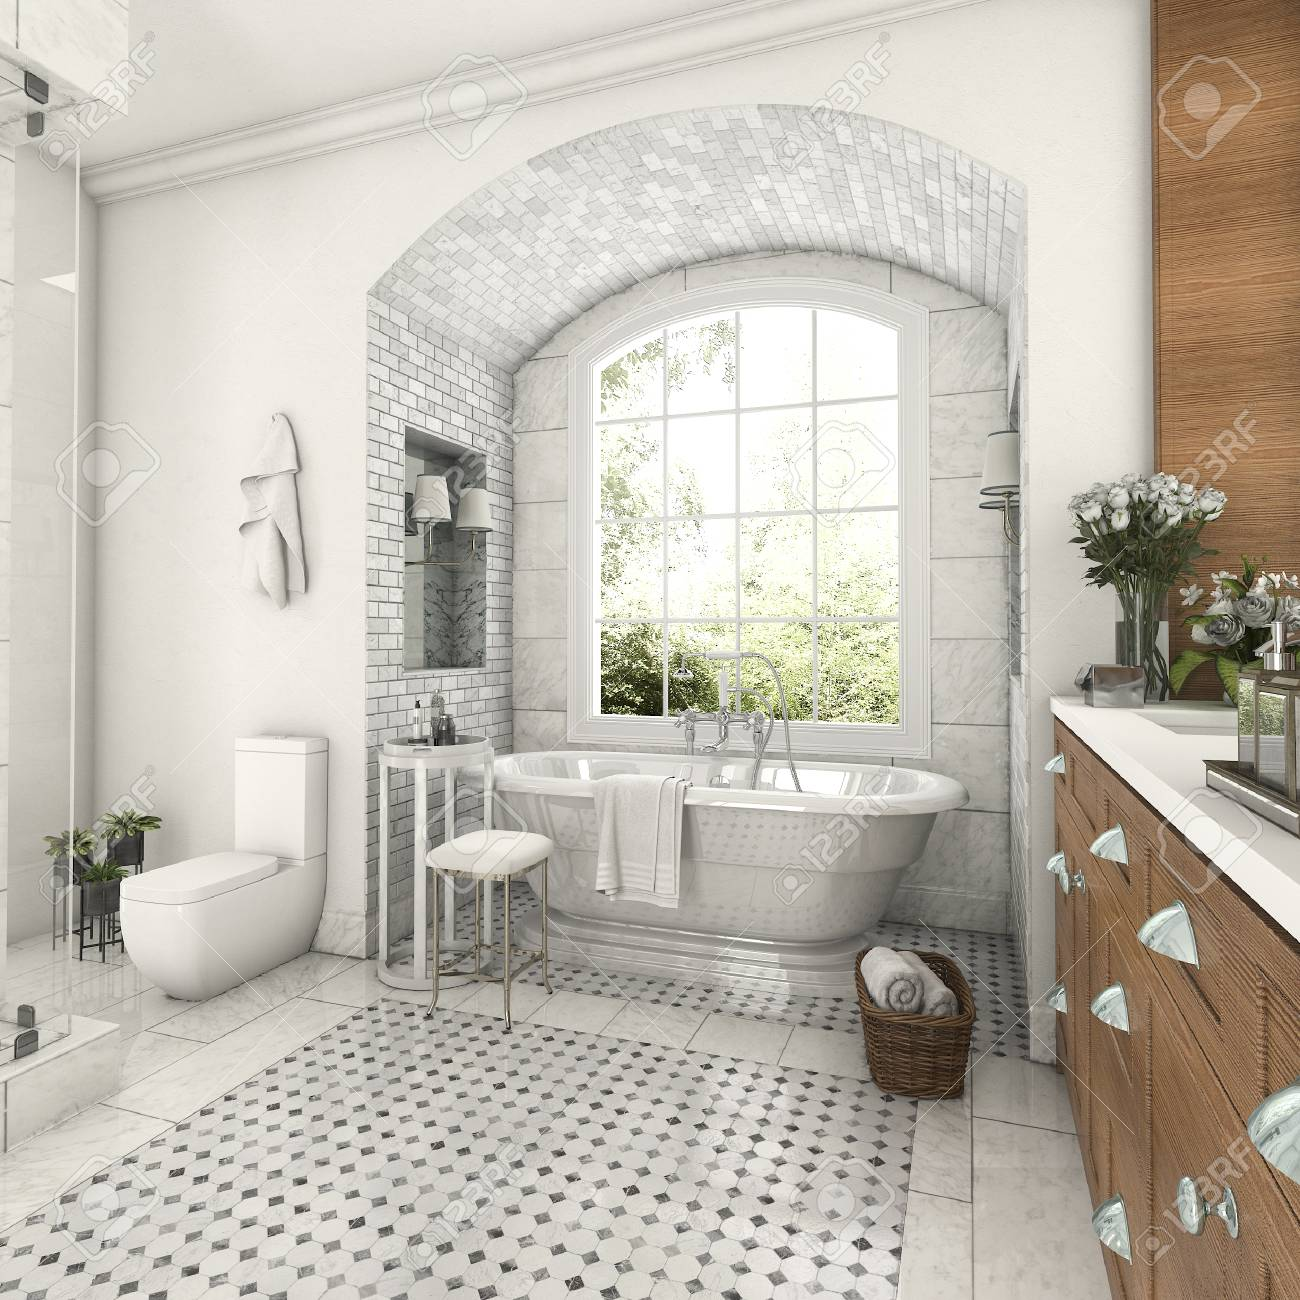 3d Rendering Wood And Tile Design Bathroom Near Window With Arc ...